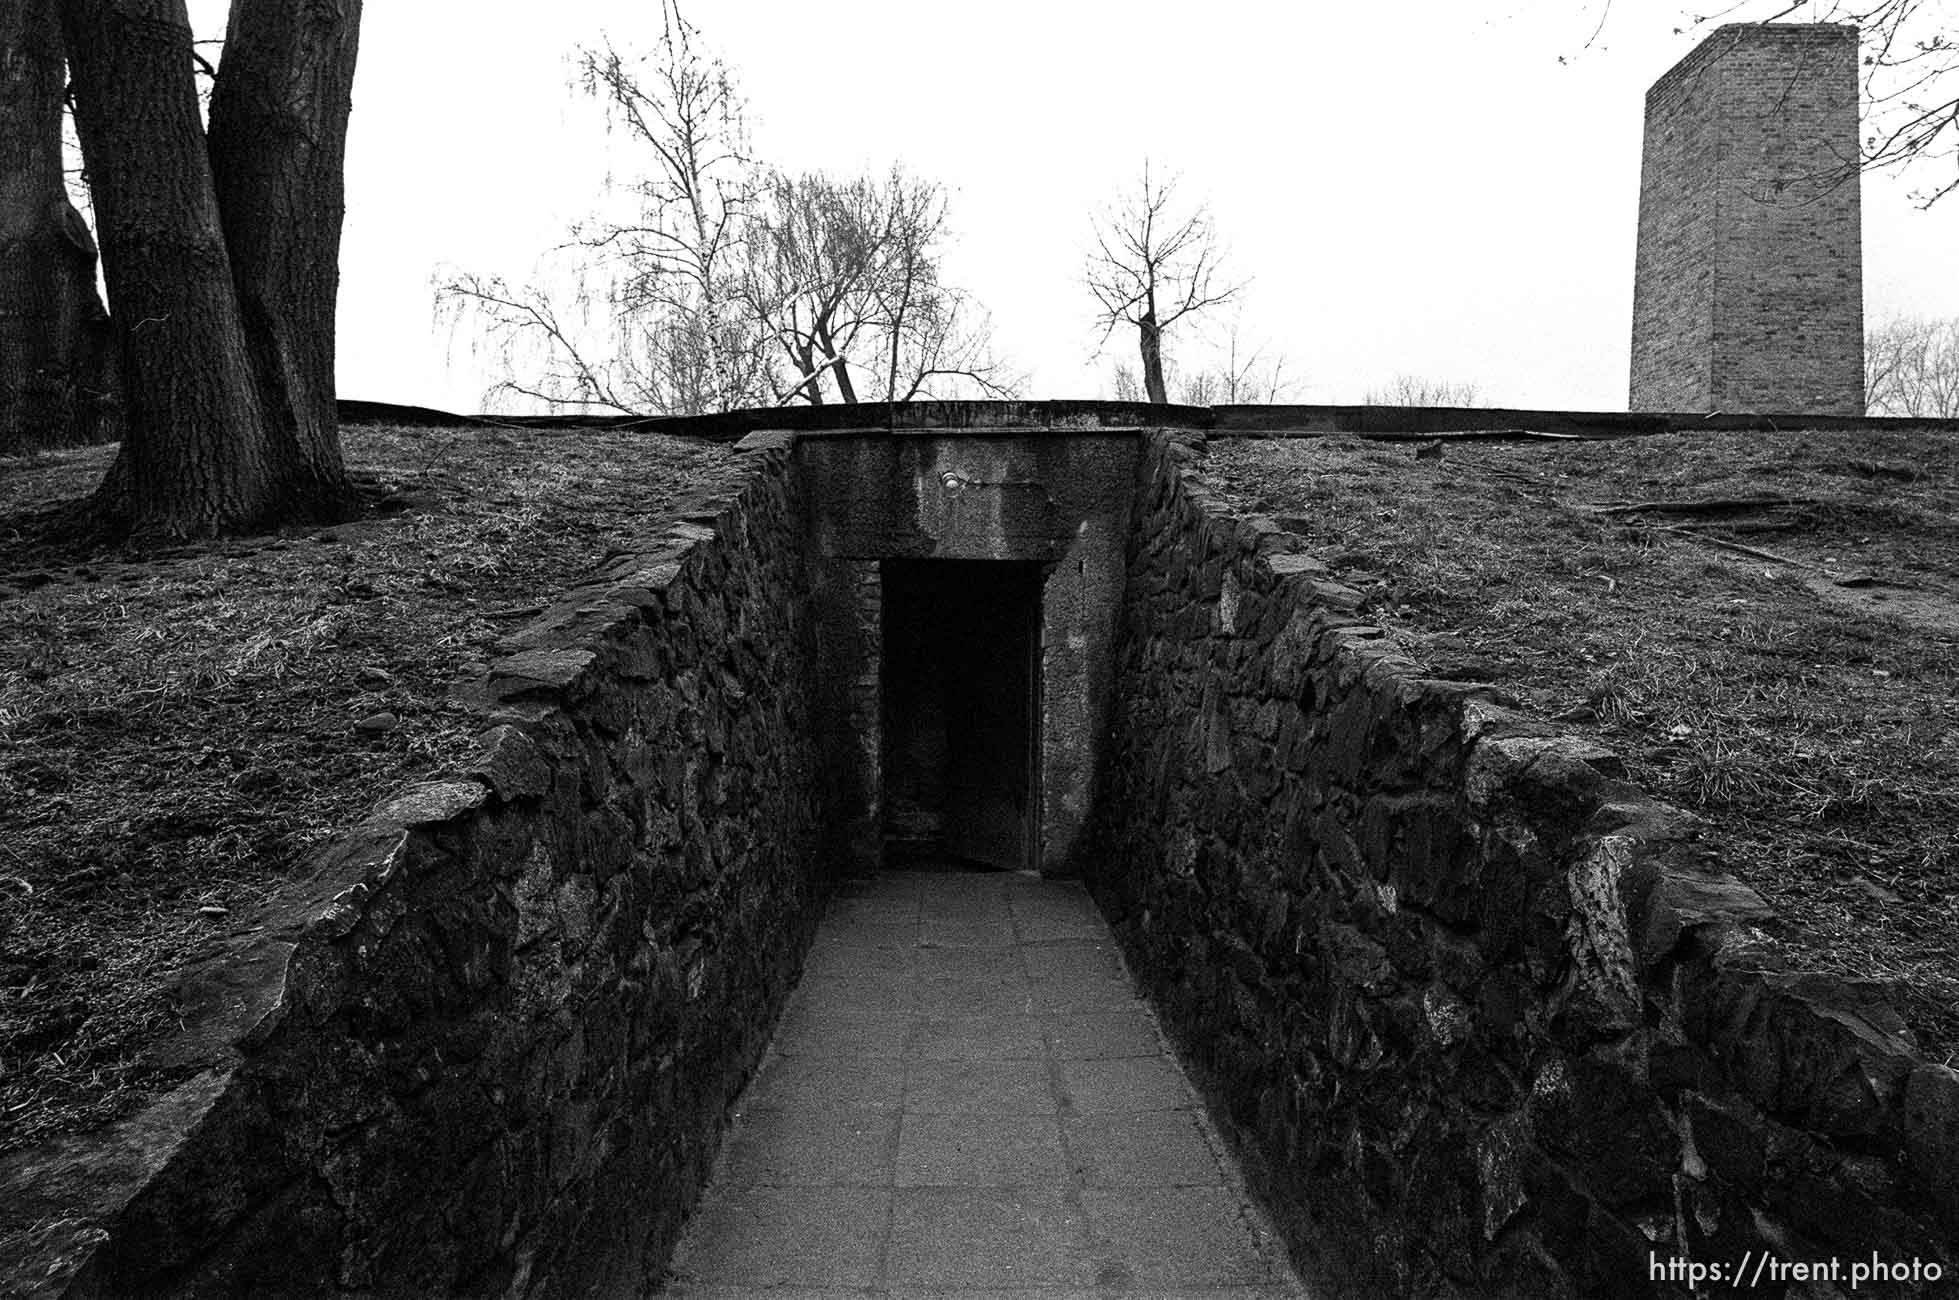 Entrance to the gas chamber at the Auschwitz Concentration Camp.